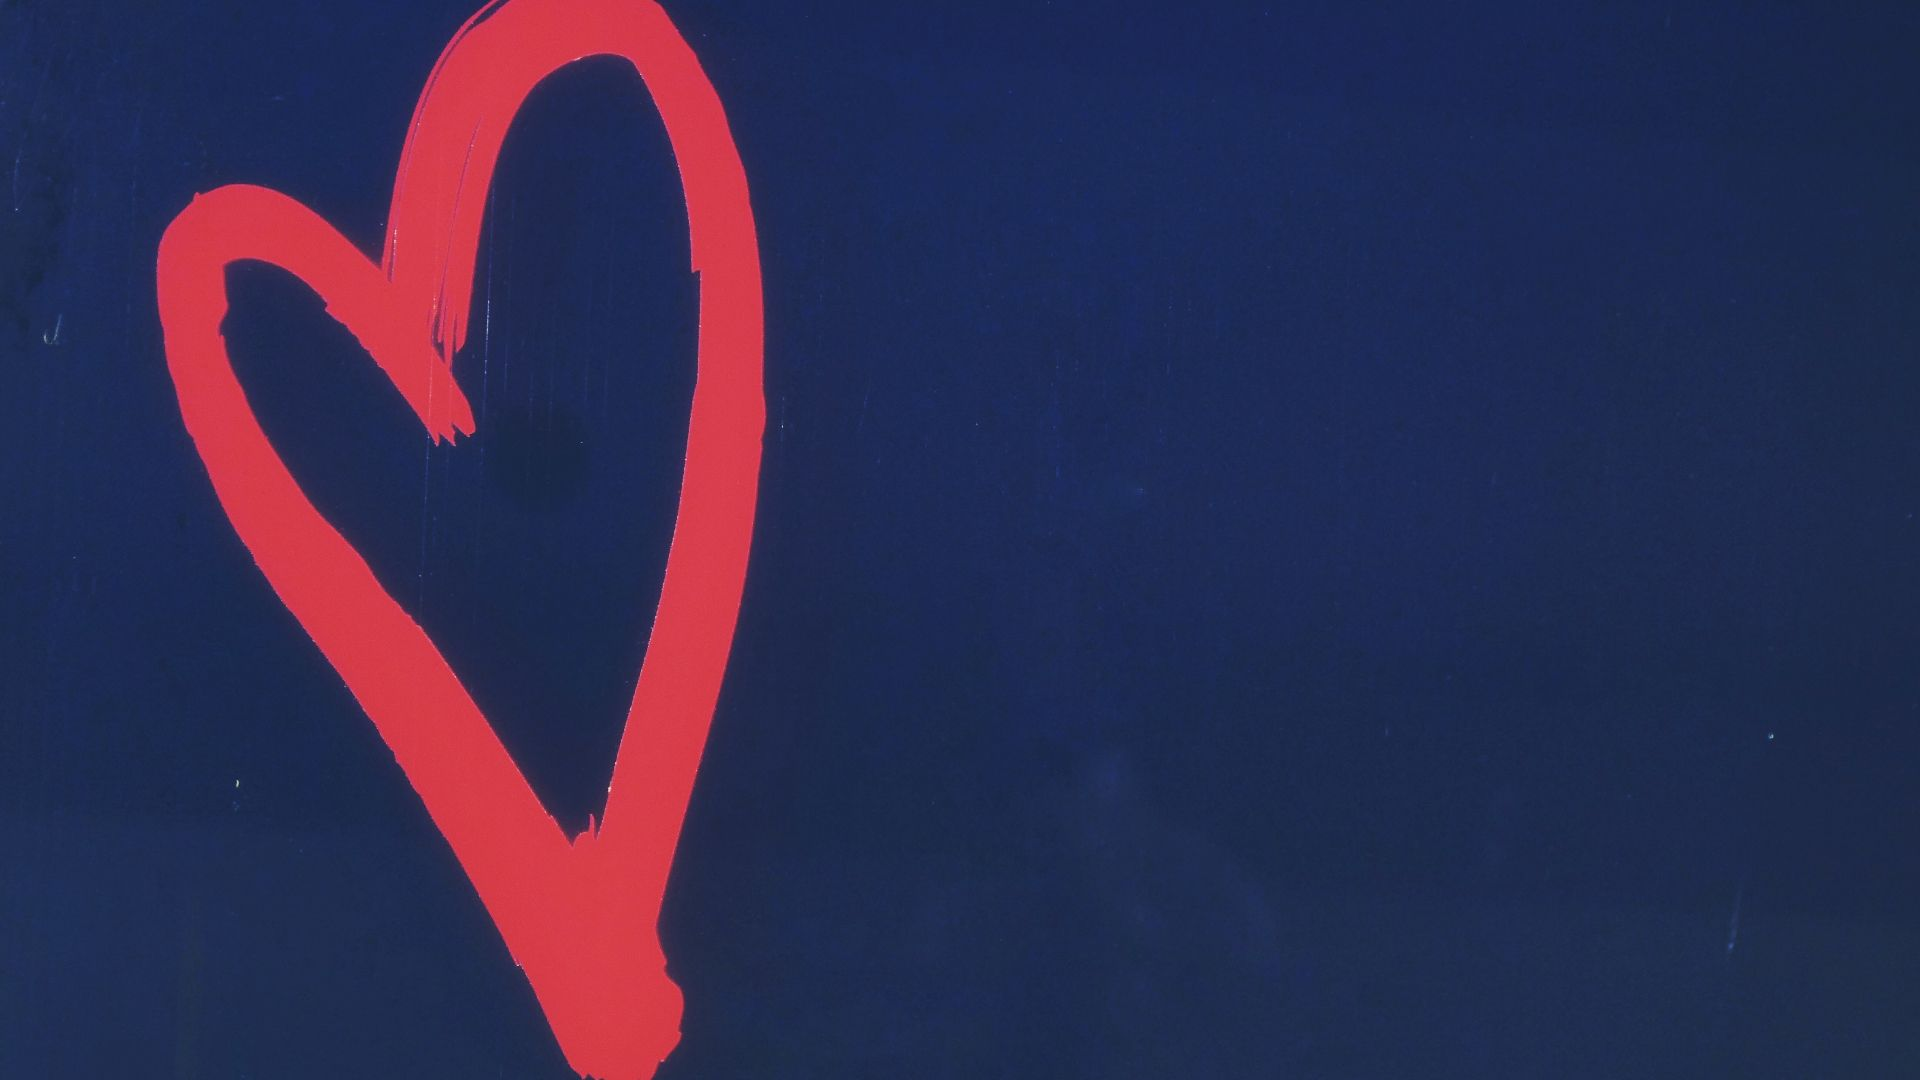 blue background with a red heart